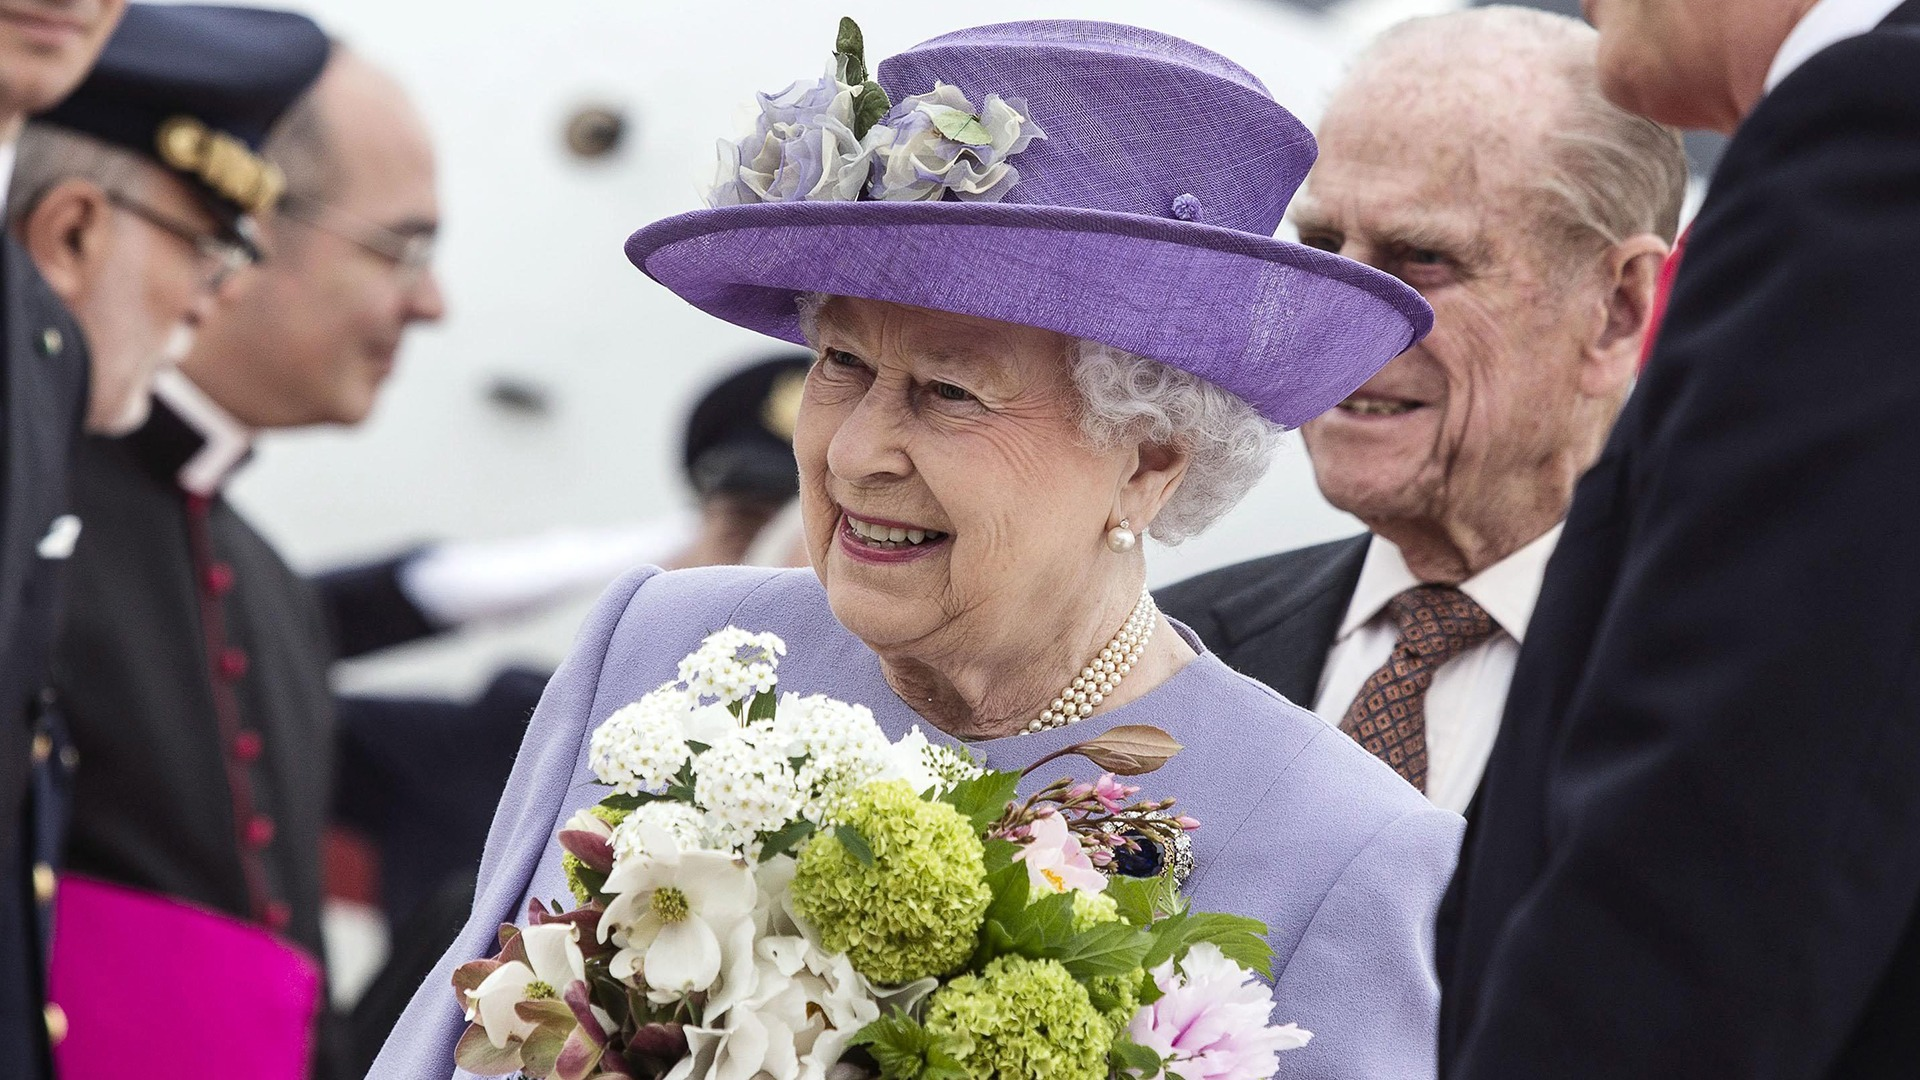 Image: Queen Elizabeth II in Rome